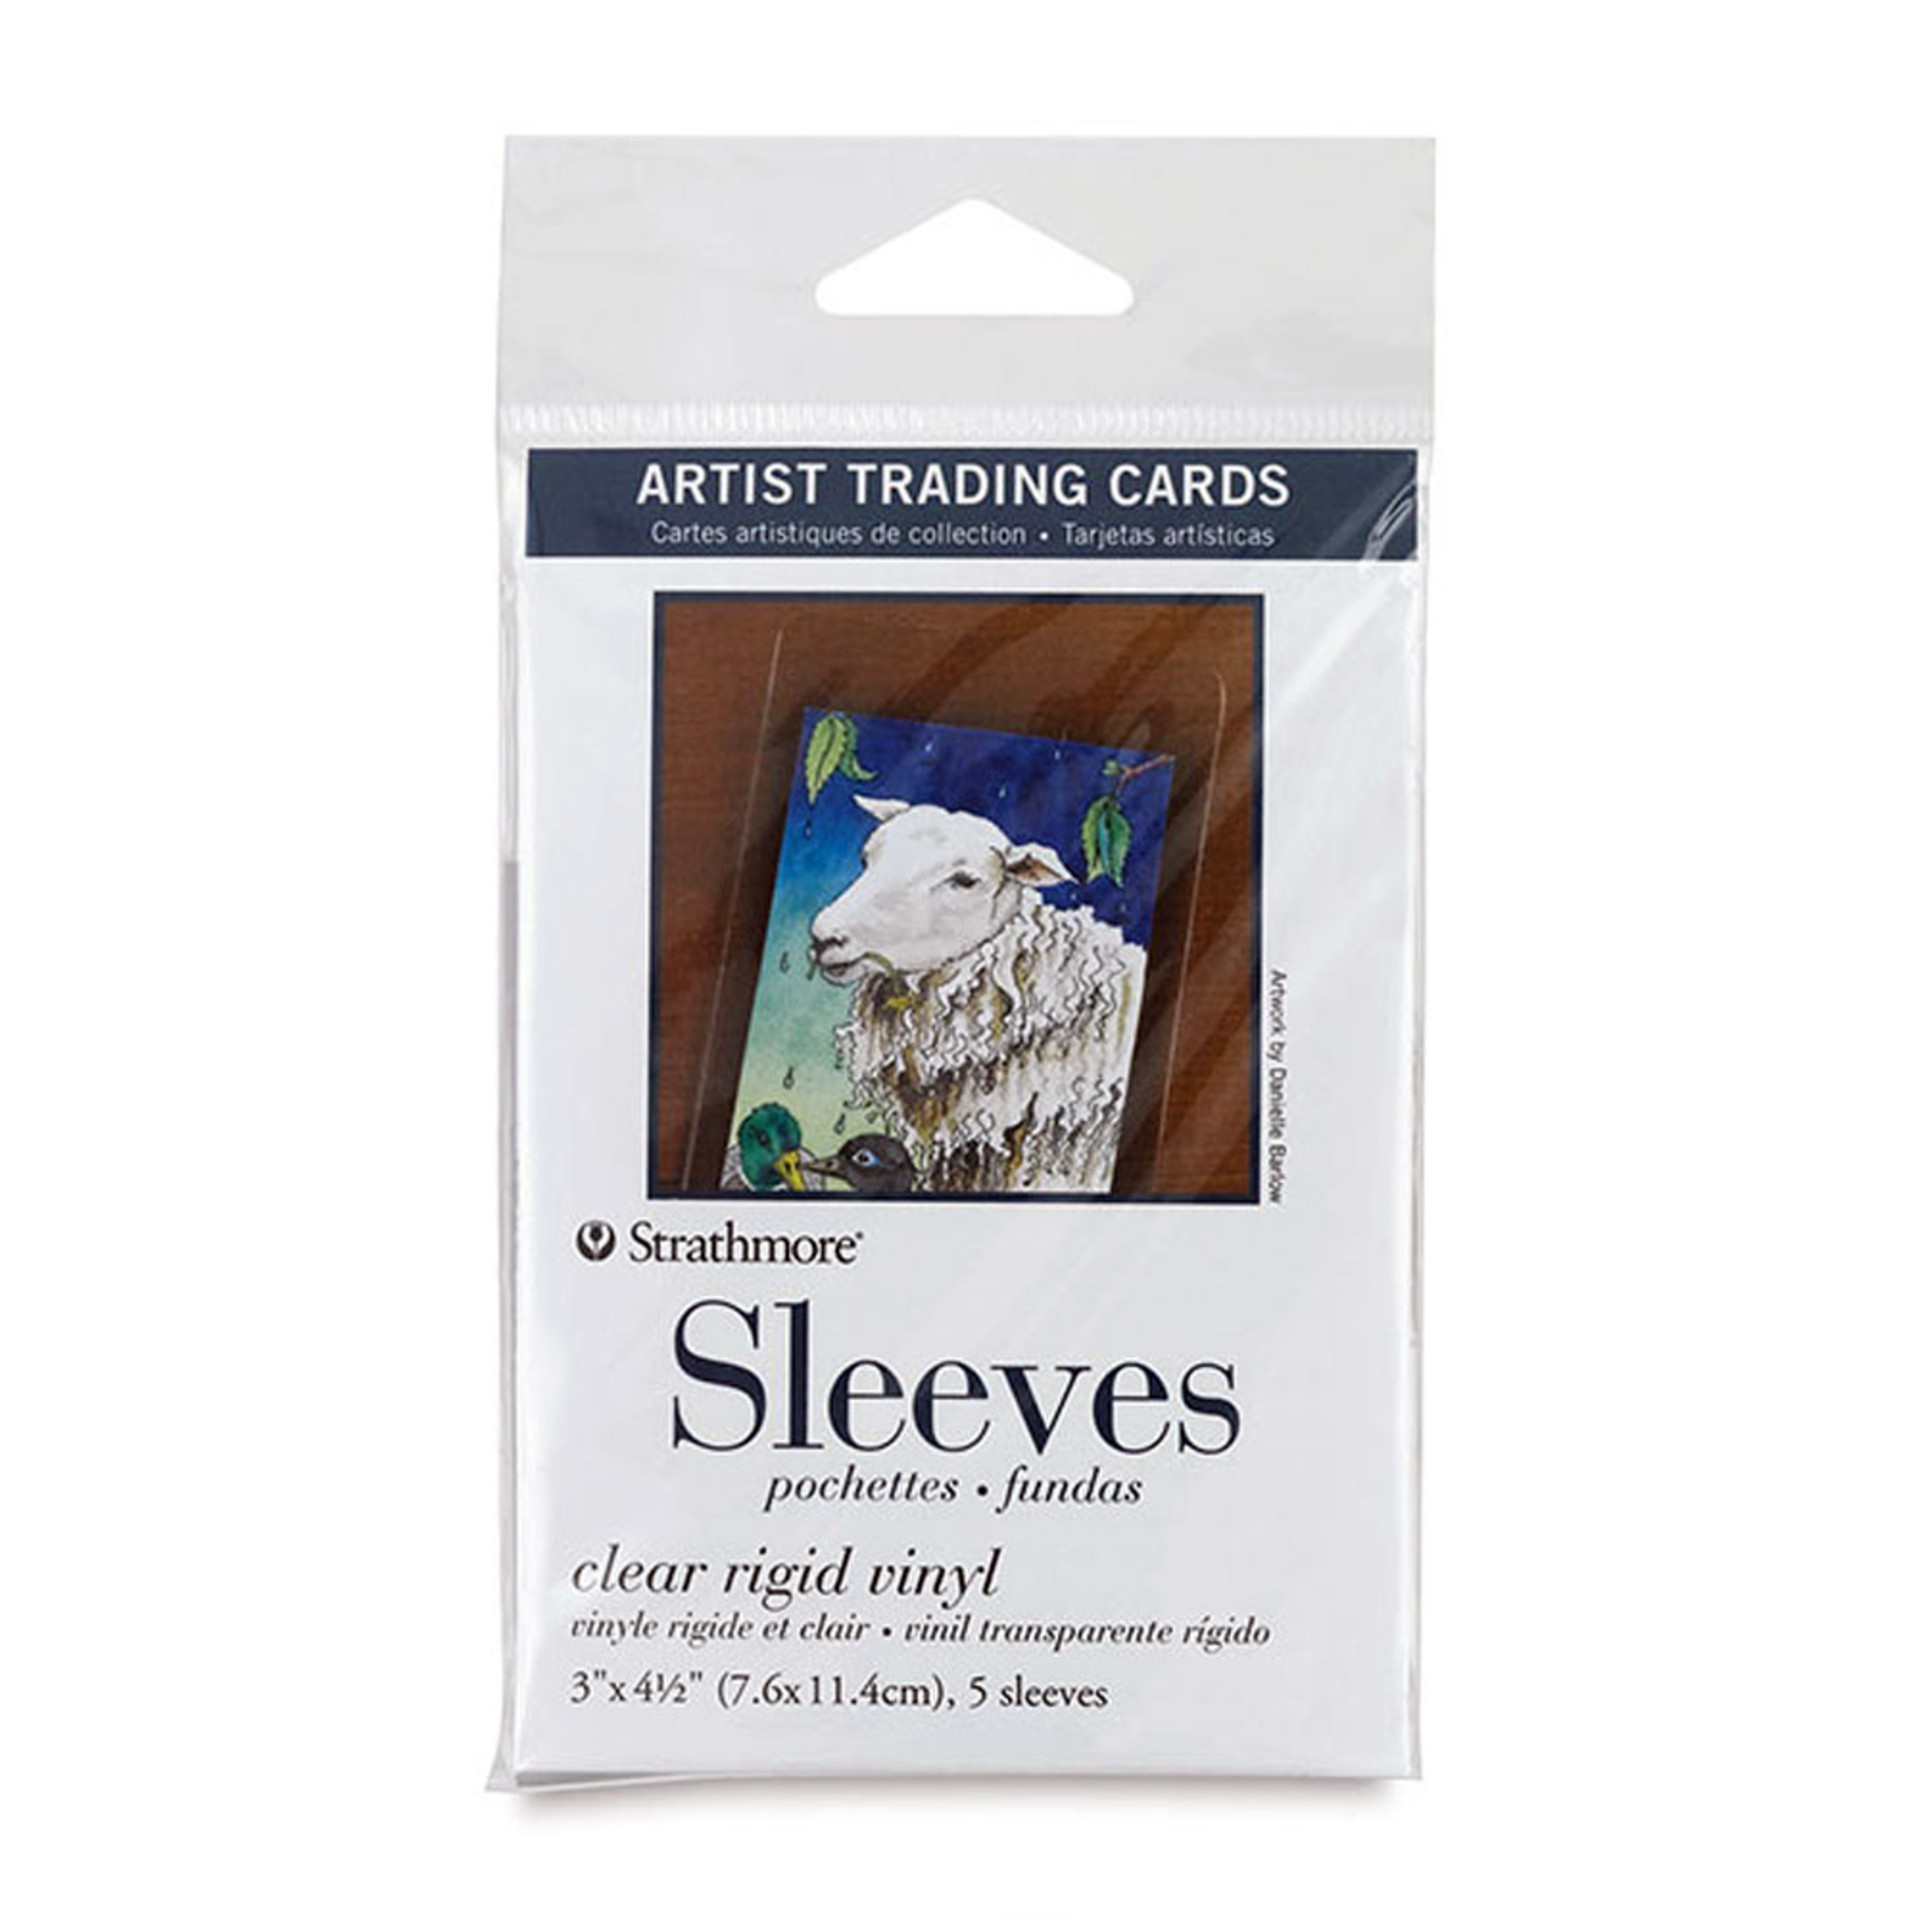 Strathmore Artist Trading Cards Clear